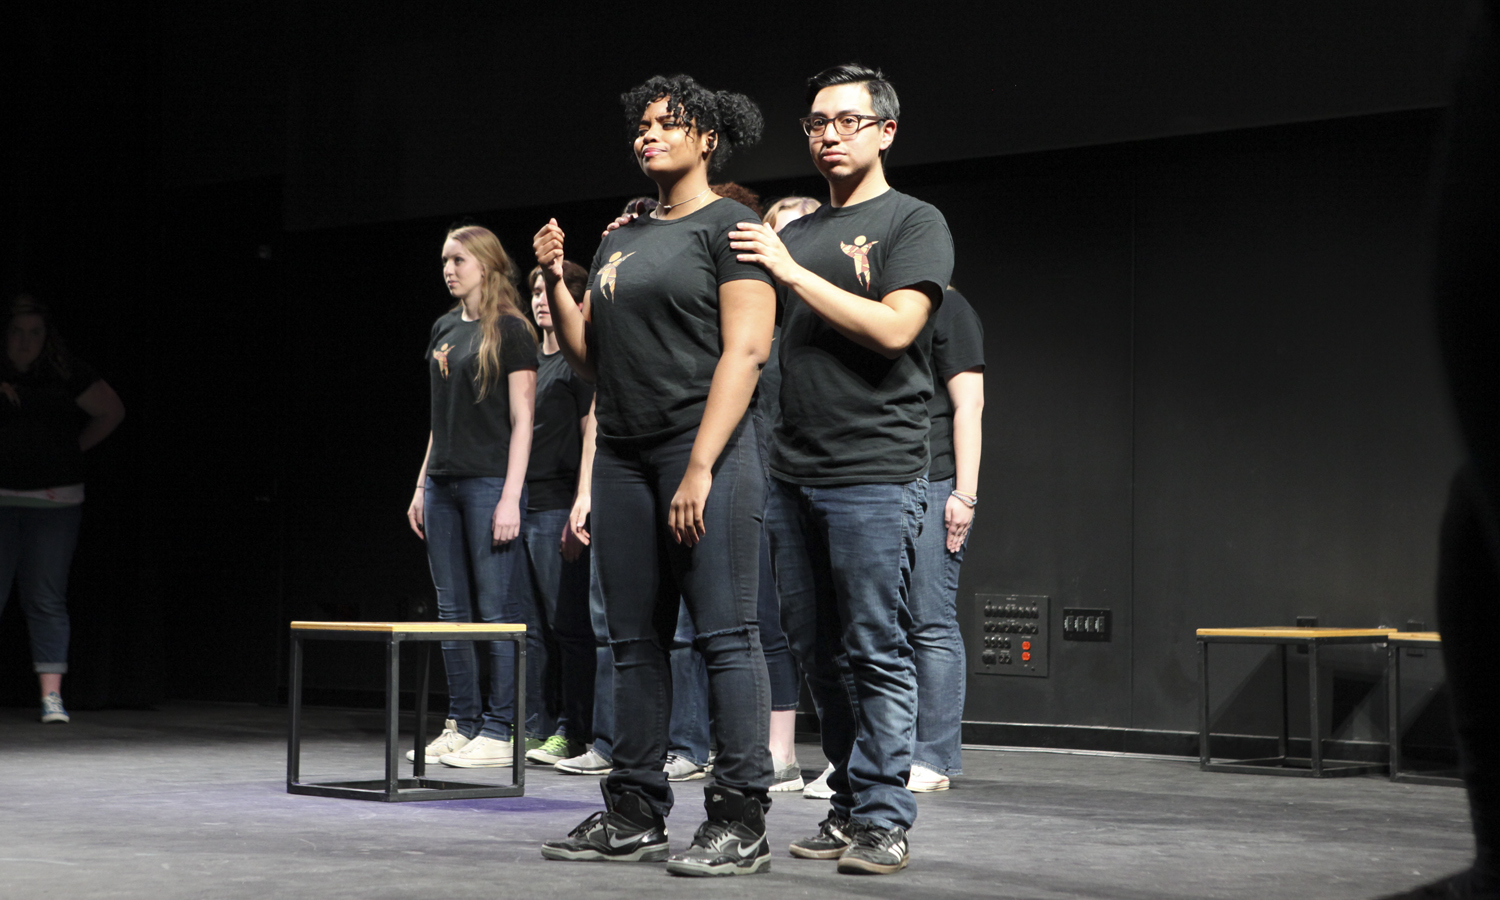 Mosaic NY celebrates the end of the 2015-2016 season with a final performance in the McDonald Theatre of the Gearan Center for the Performing Arts.